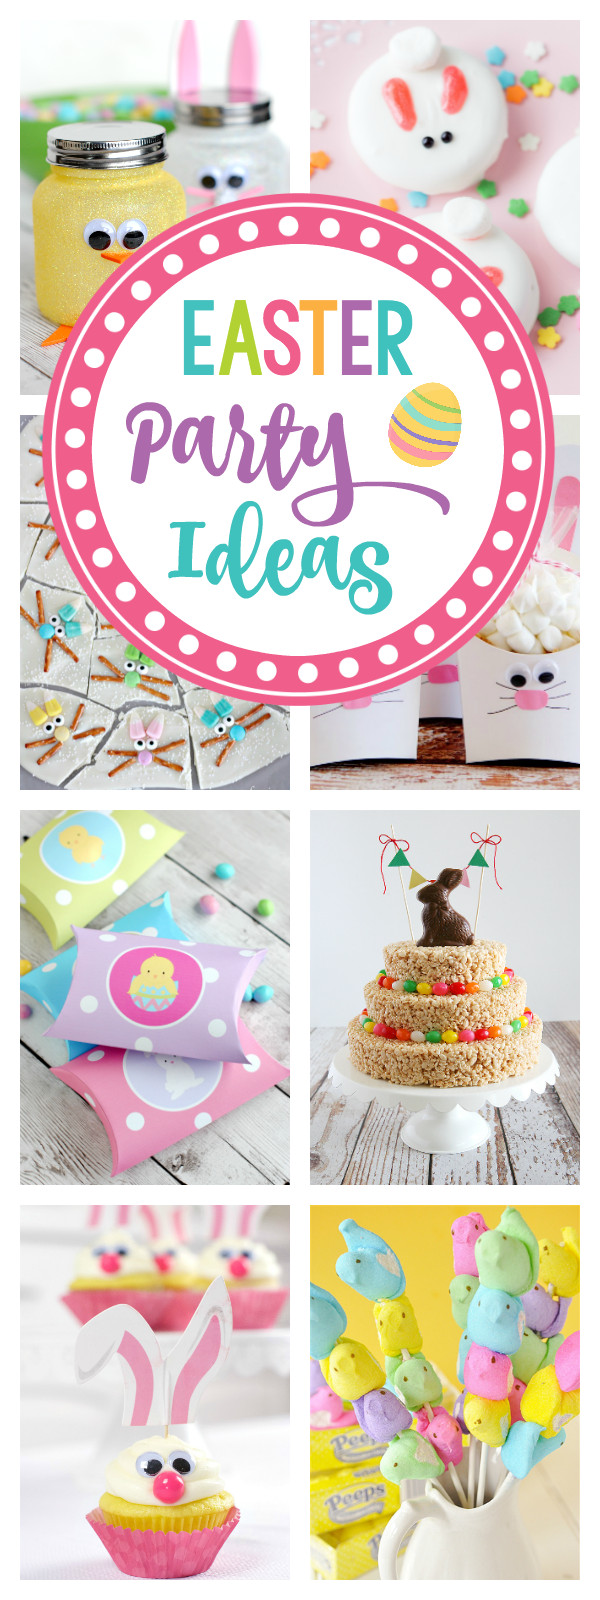 Easter Kid Party Ideas  25 Fun Easter Party Ideas for Kids – Fun Squared